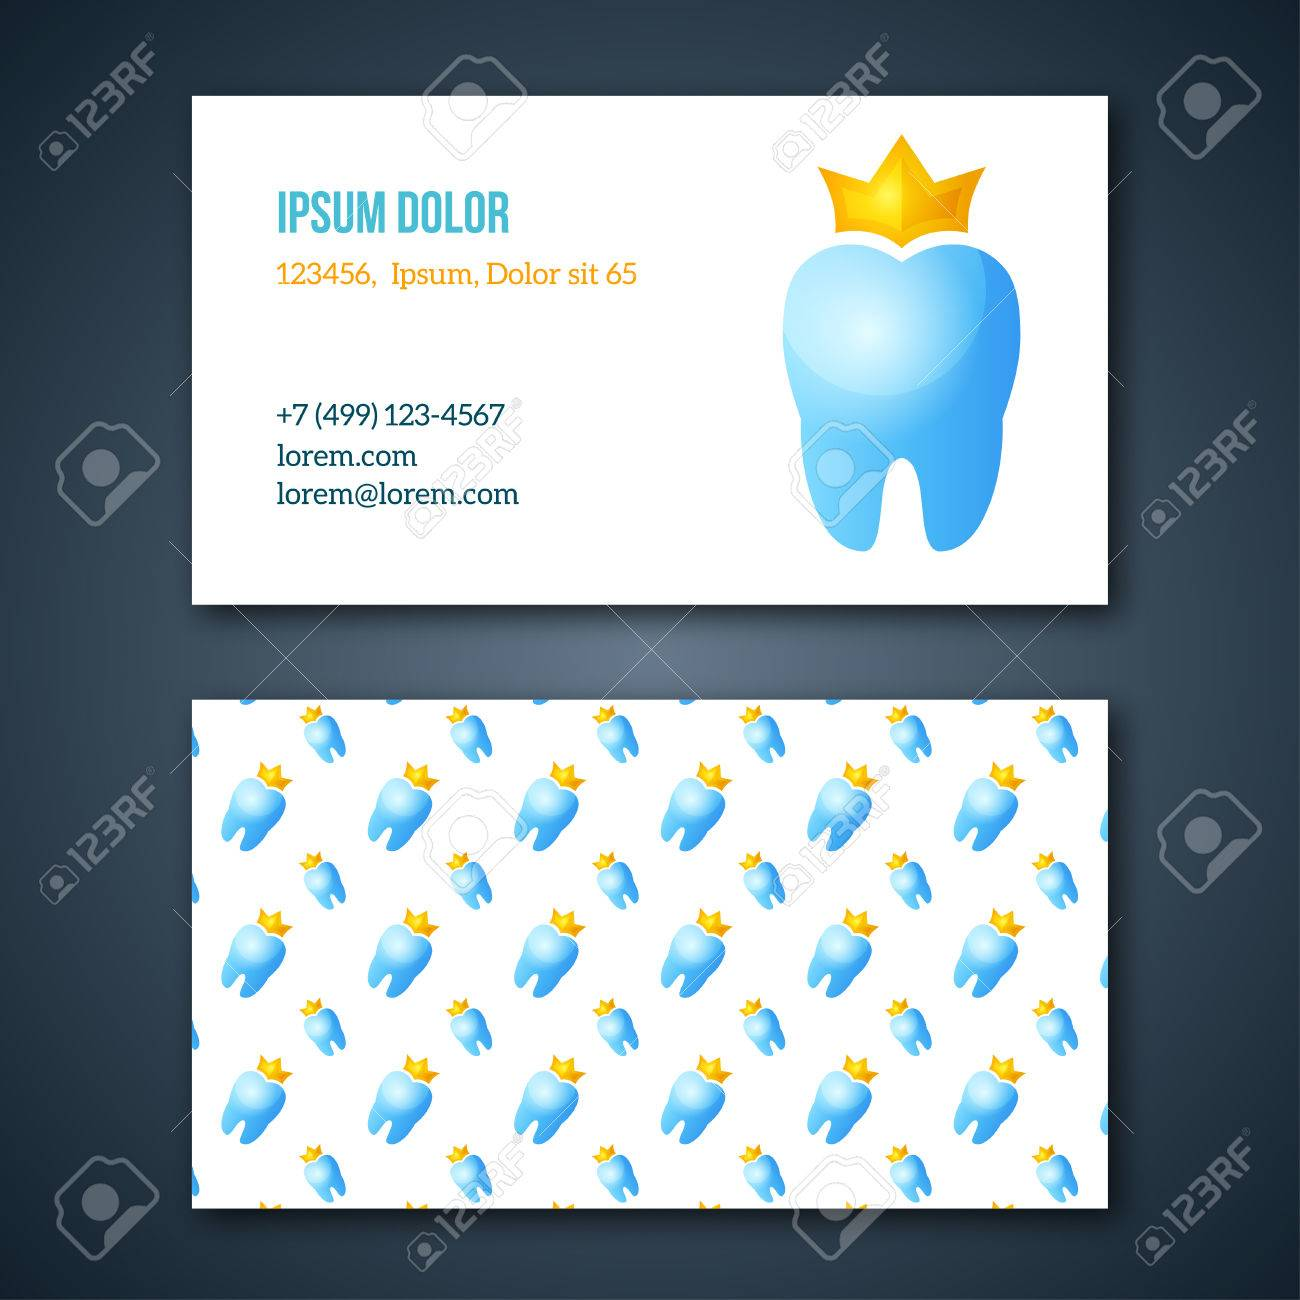 Dental Clinic Corporate Identity Template. Dentist Business Cards ...